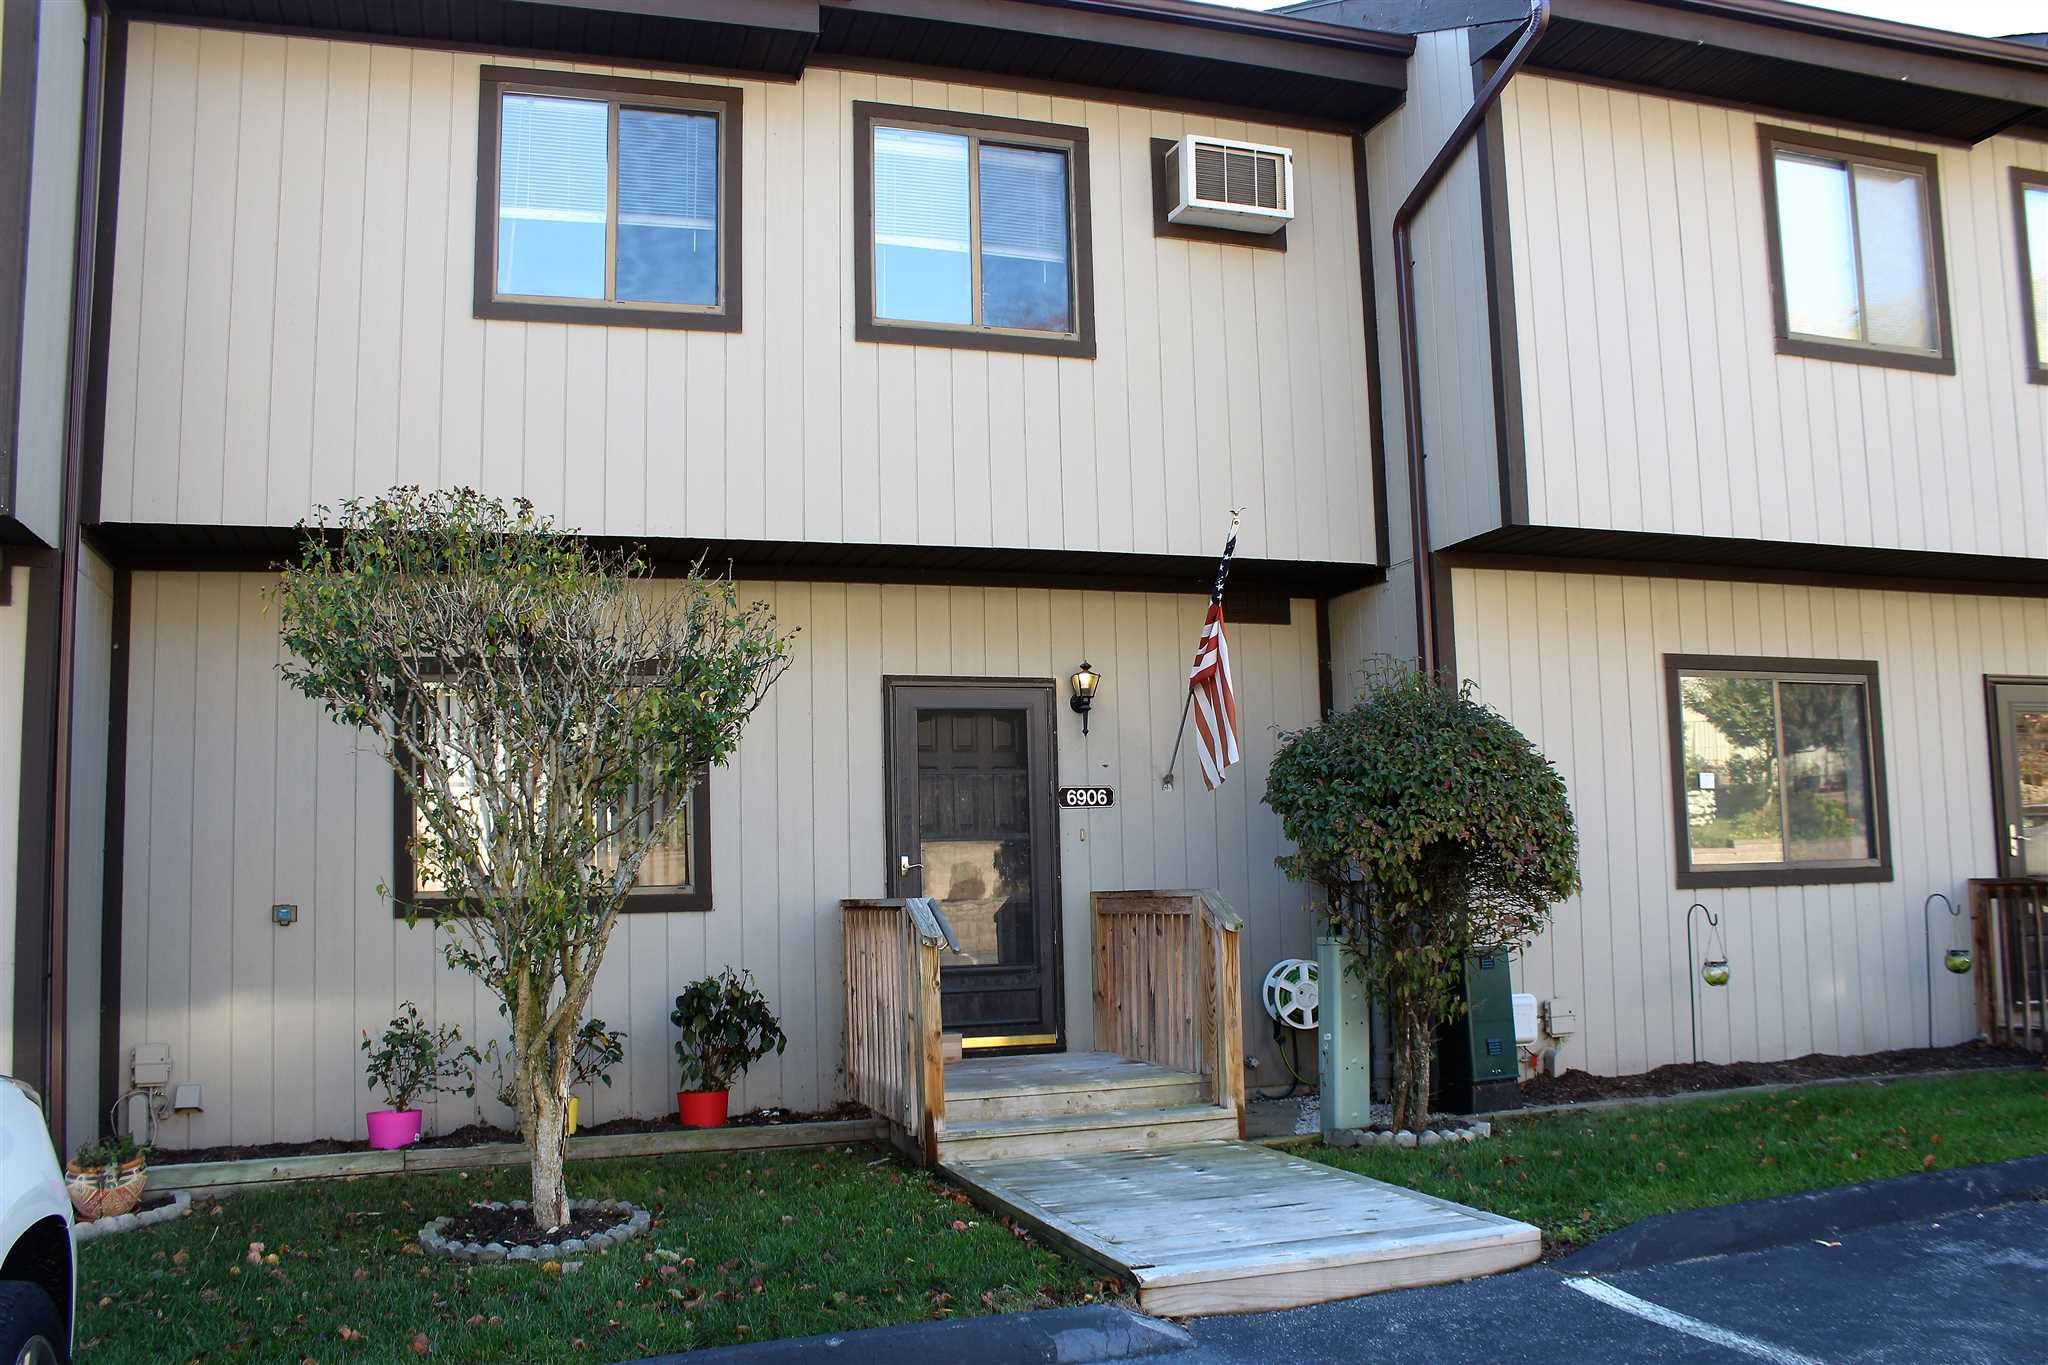 Single Family Home for Sale at 6906 CHELSEA COVE NORTH 6906 CHELSEA COVE NORTH East Fishkill, New York 12533 United States